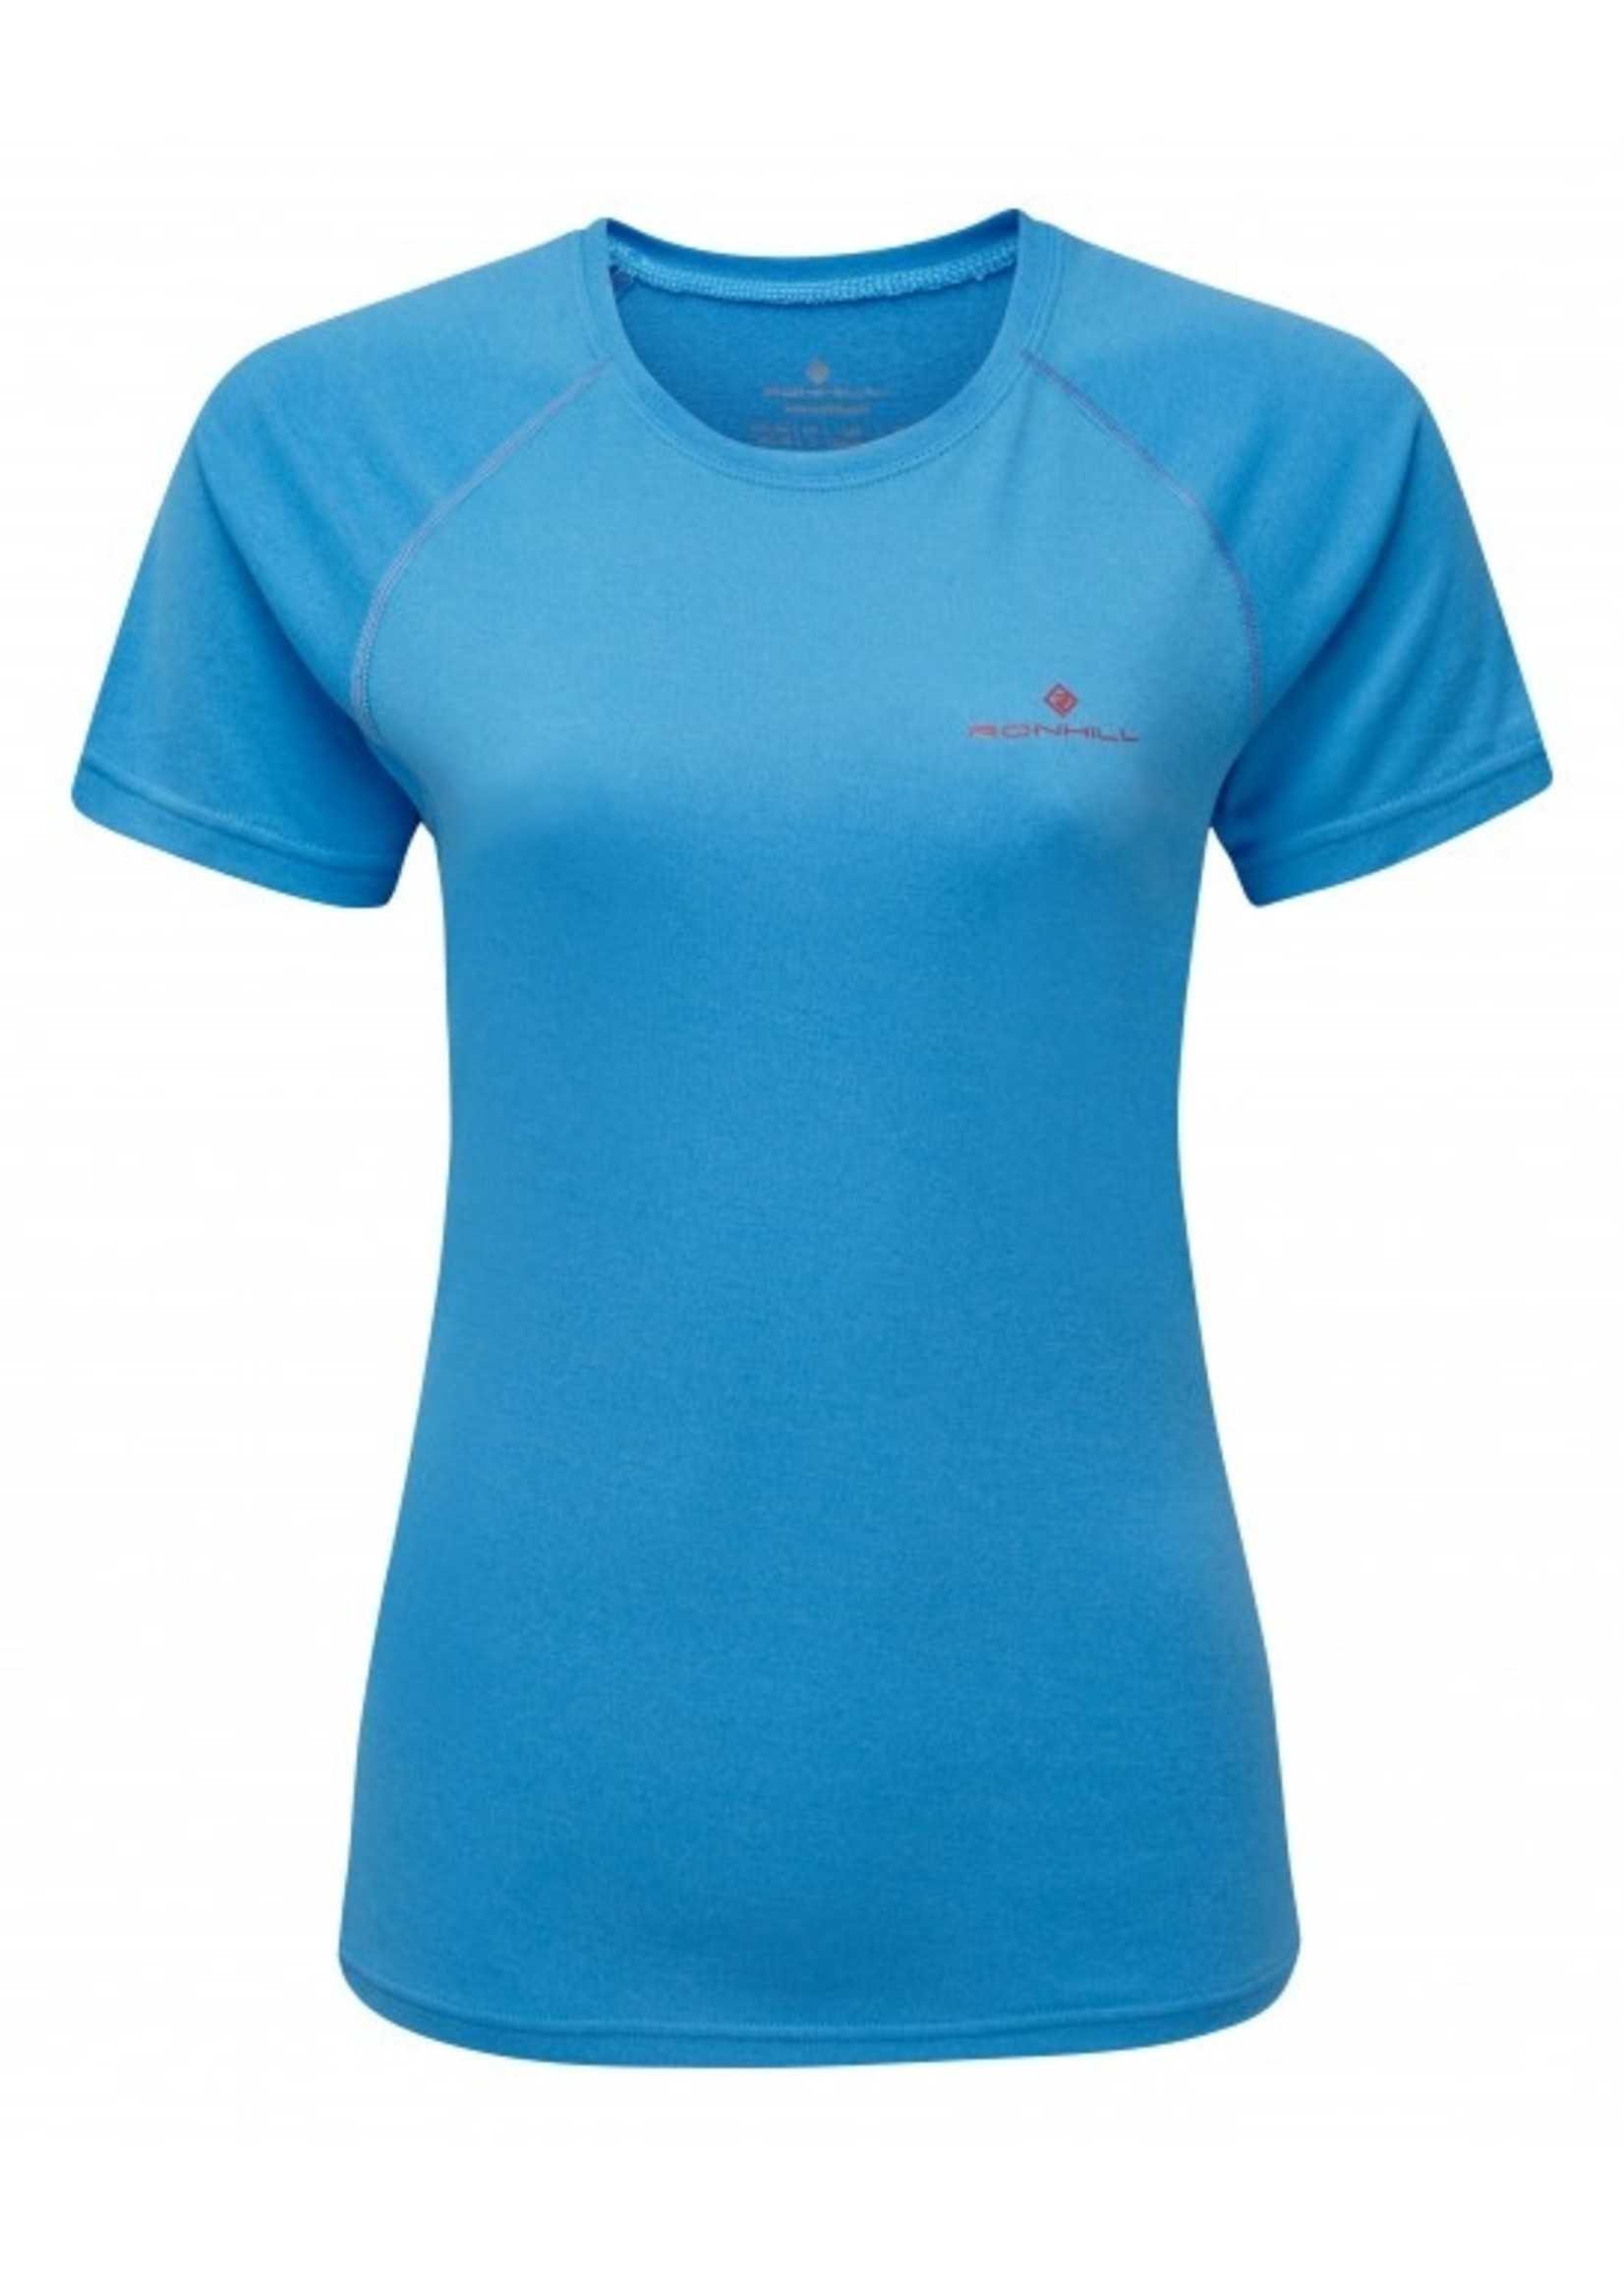 Ronhill Ronhill Everyday Ladies Tee (2020)